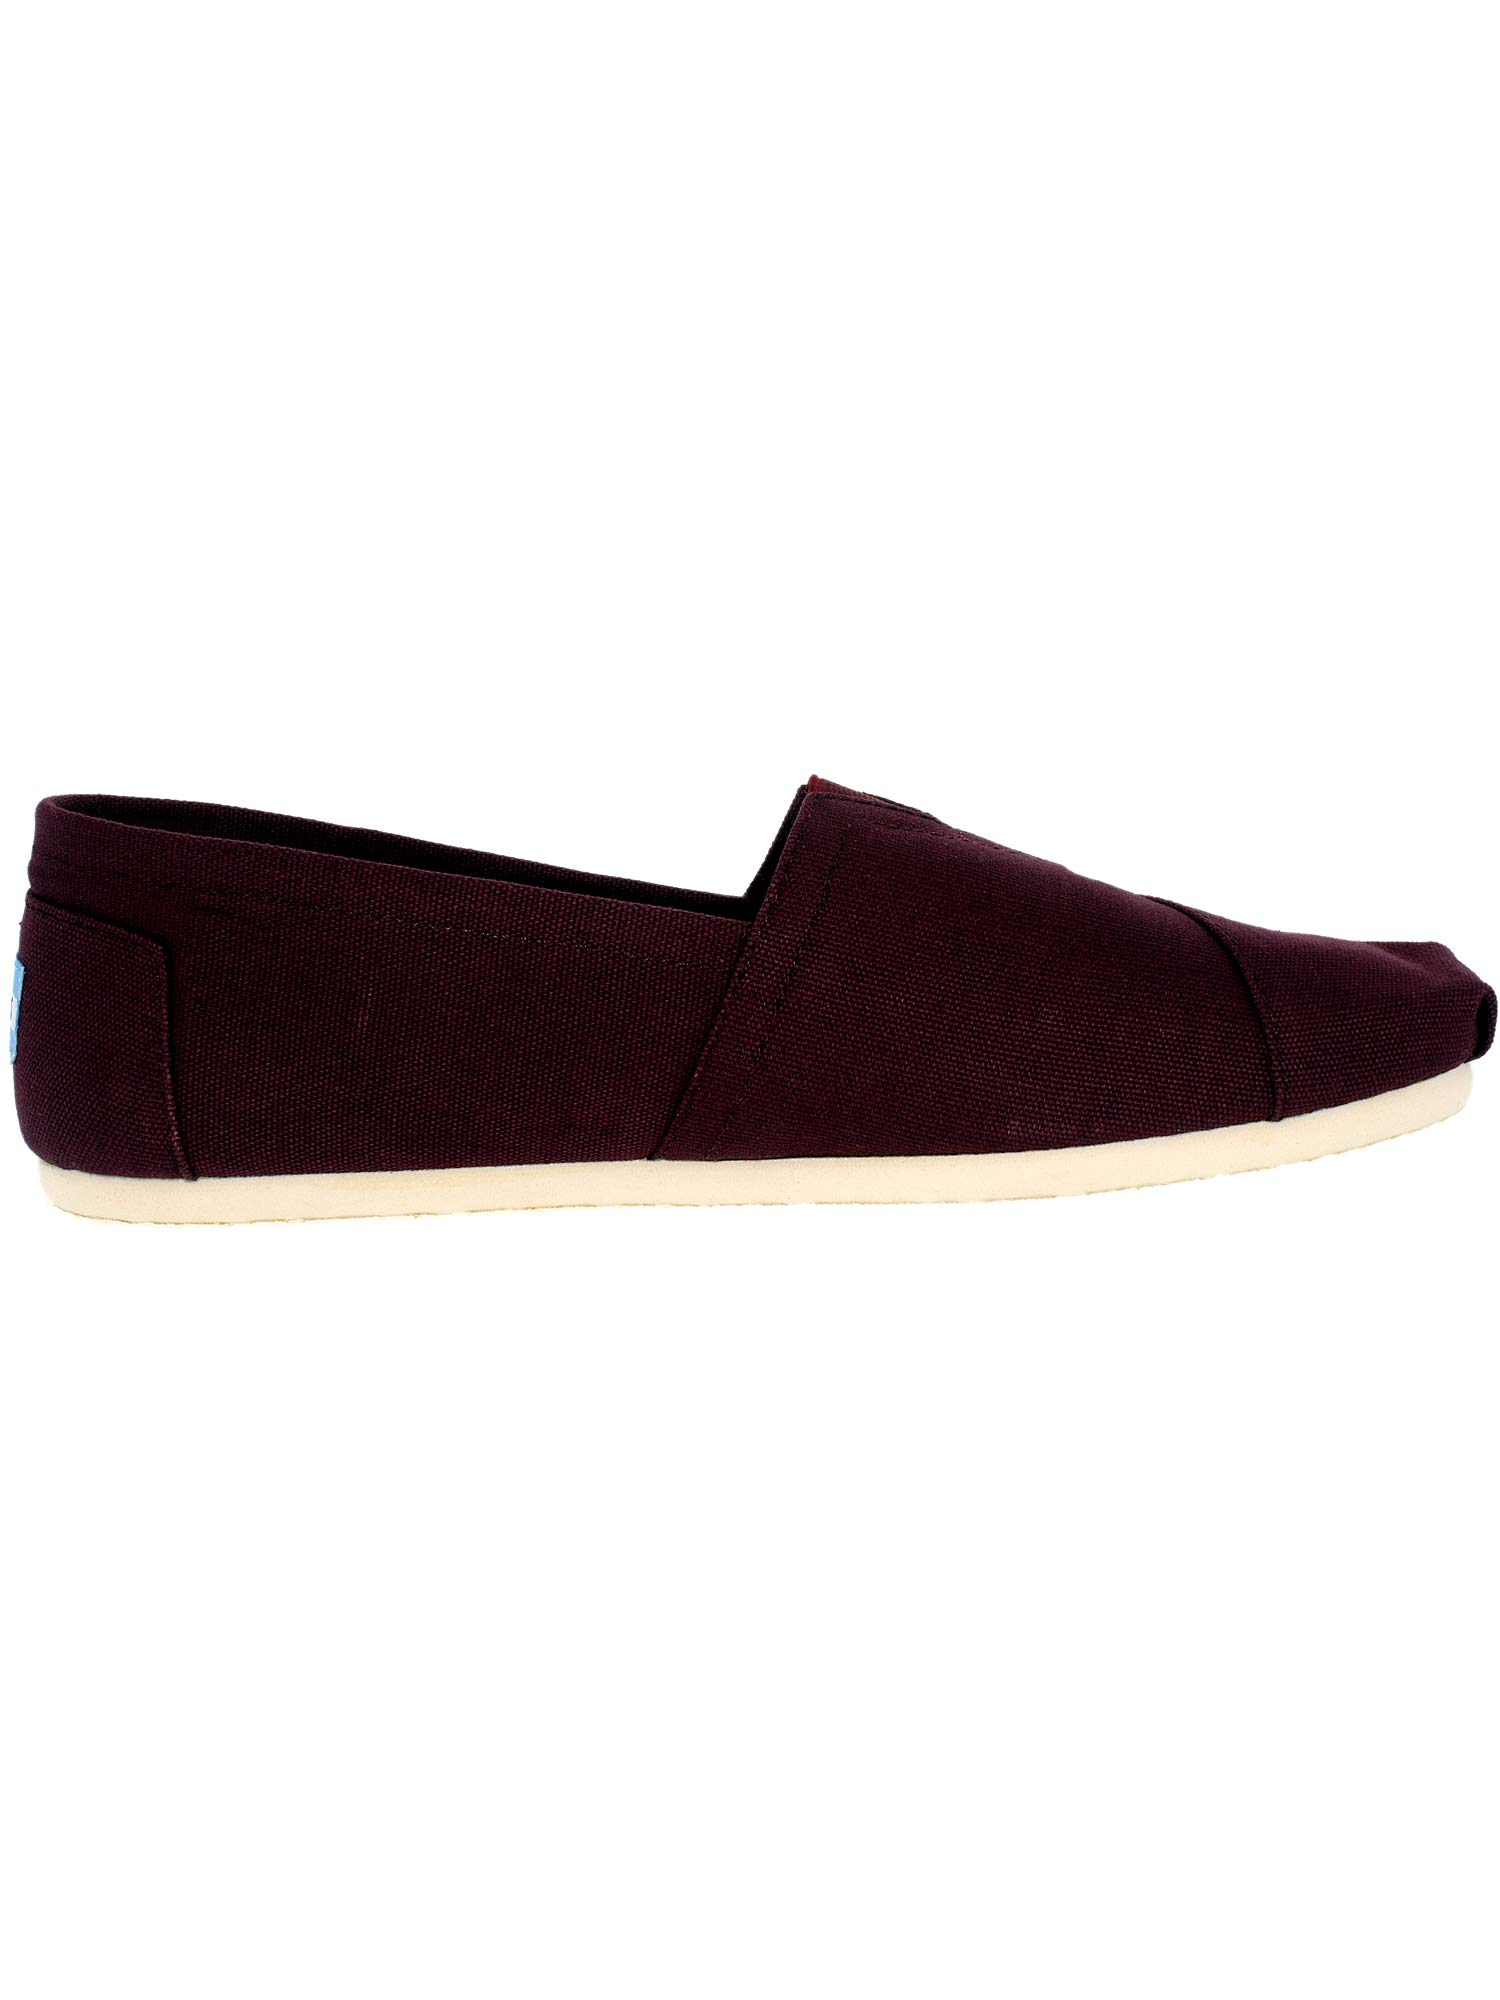 TOMS Men's Classic Canvas Slip-On, Red Mahogany Canvas - 11.5 D(M) US by TOMS (Image #3)